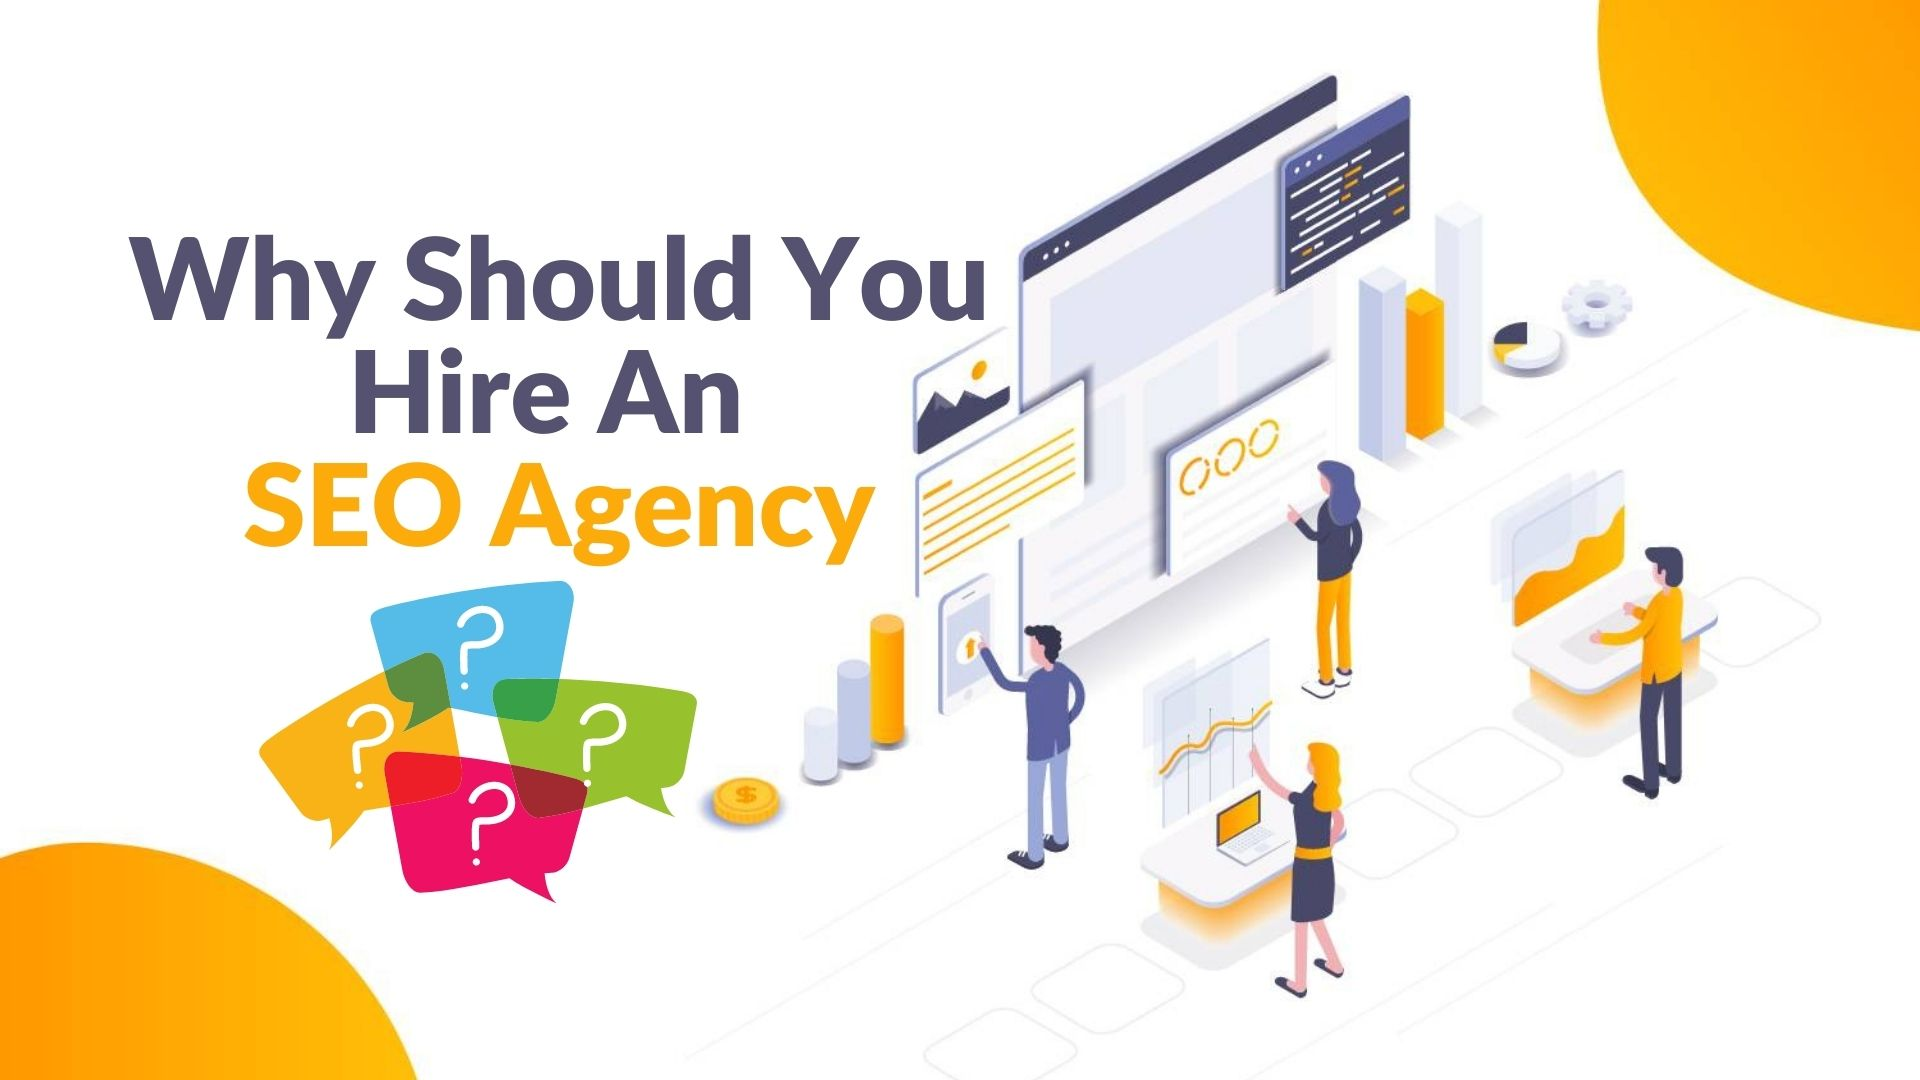 Why Should You Hire An SEO Agency?